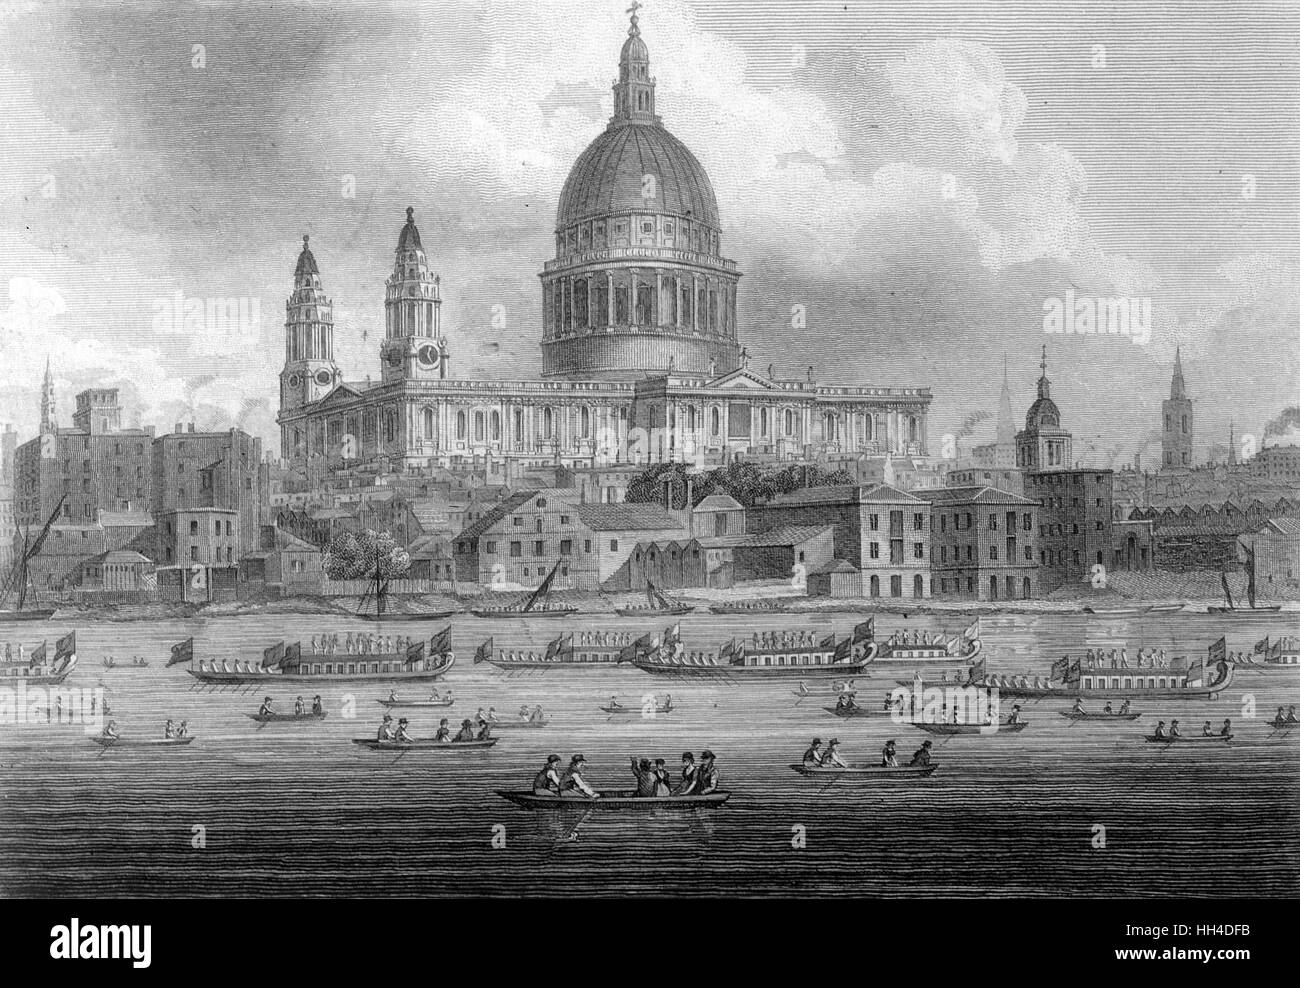 St Paul's Cathedral with the  Lord Mayor's Show on the water - Stock Image